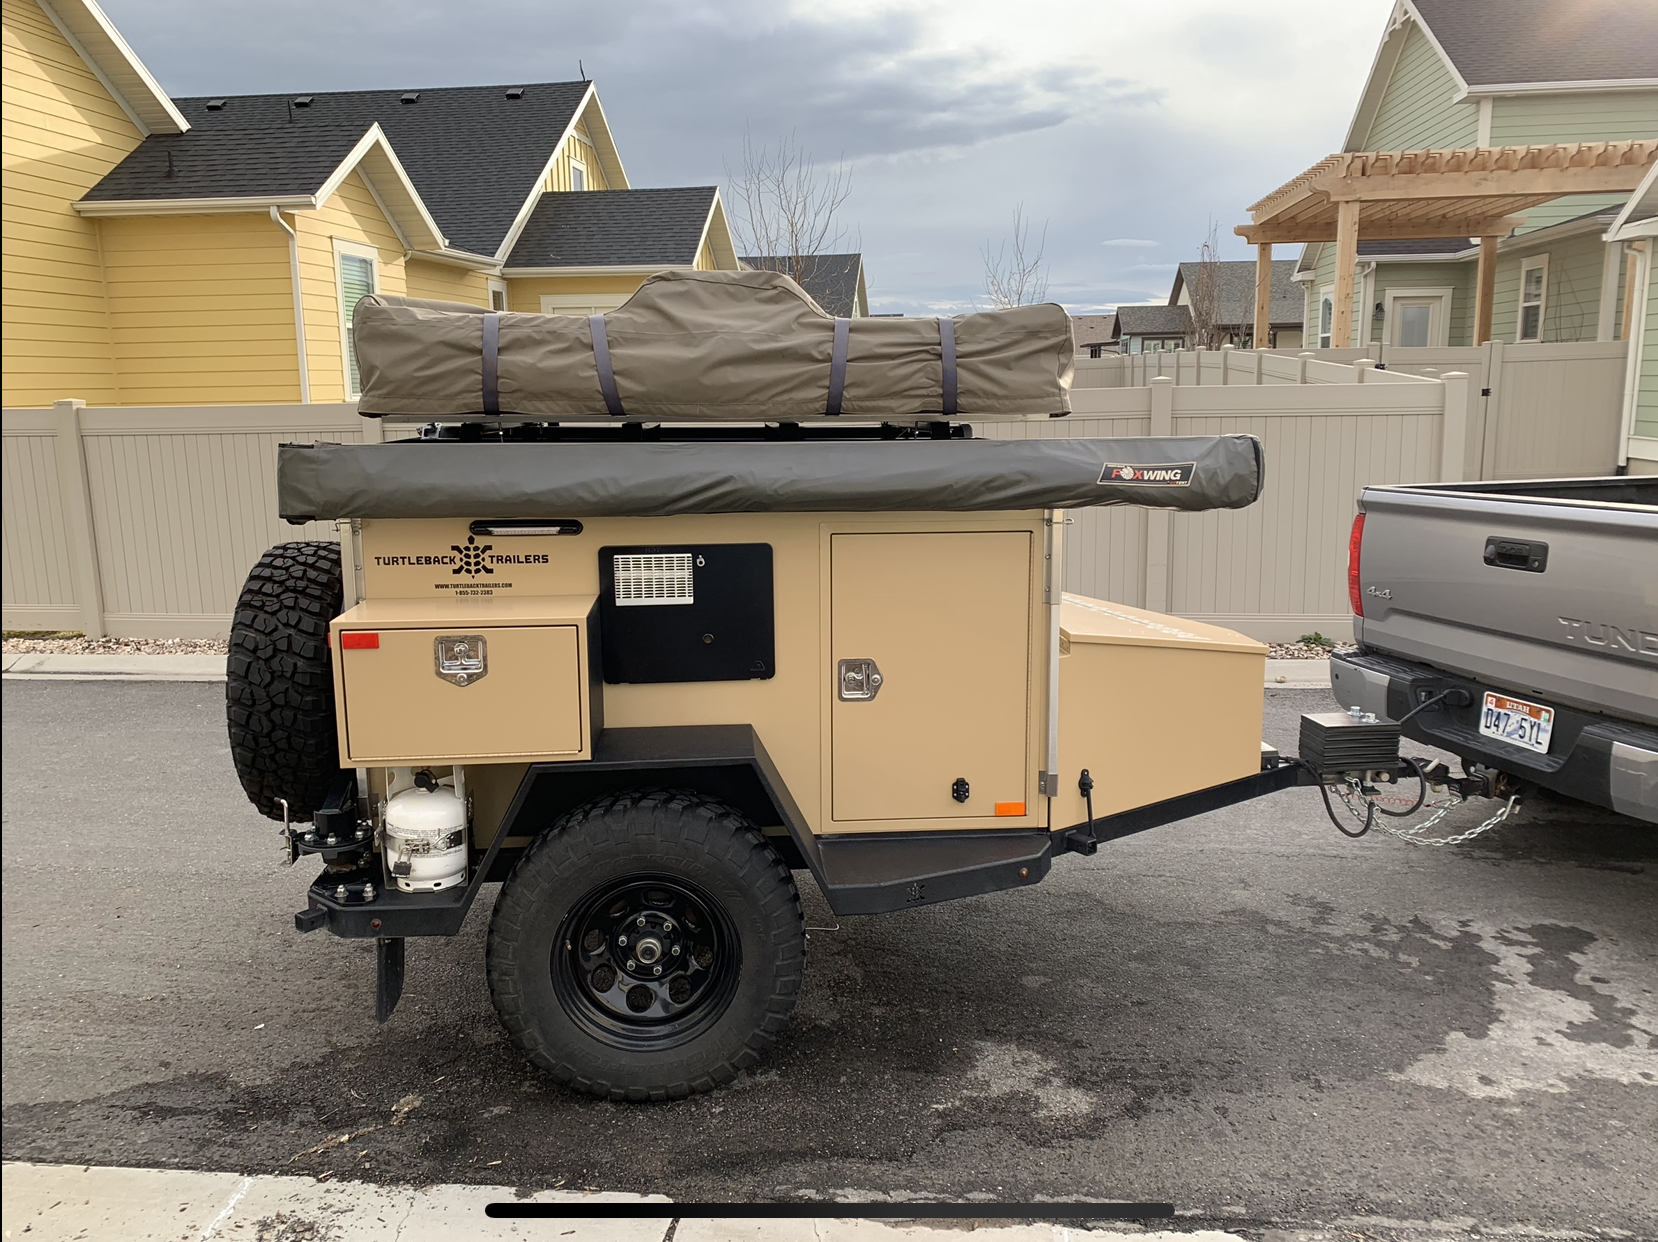 2016 Turtleback Expedition Trailer For Sale   Expedition Portal